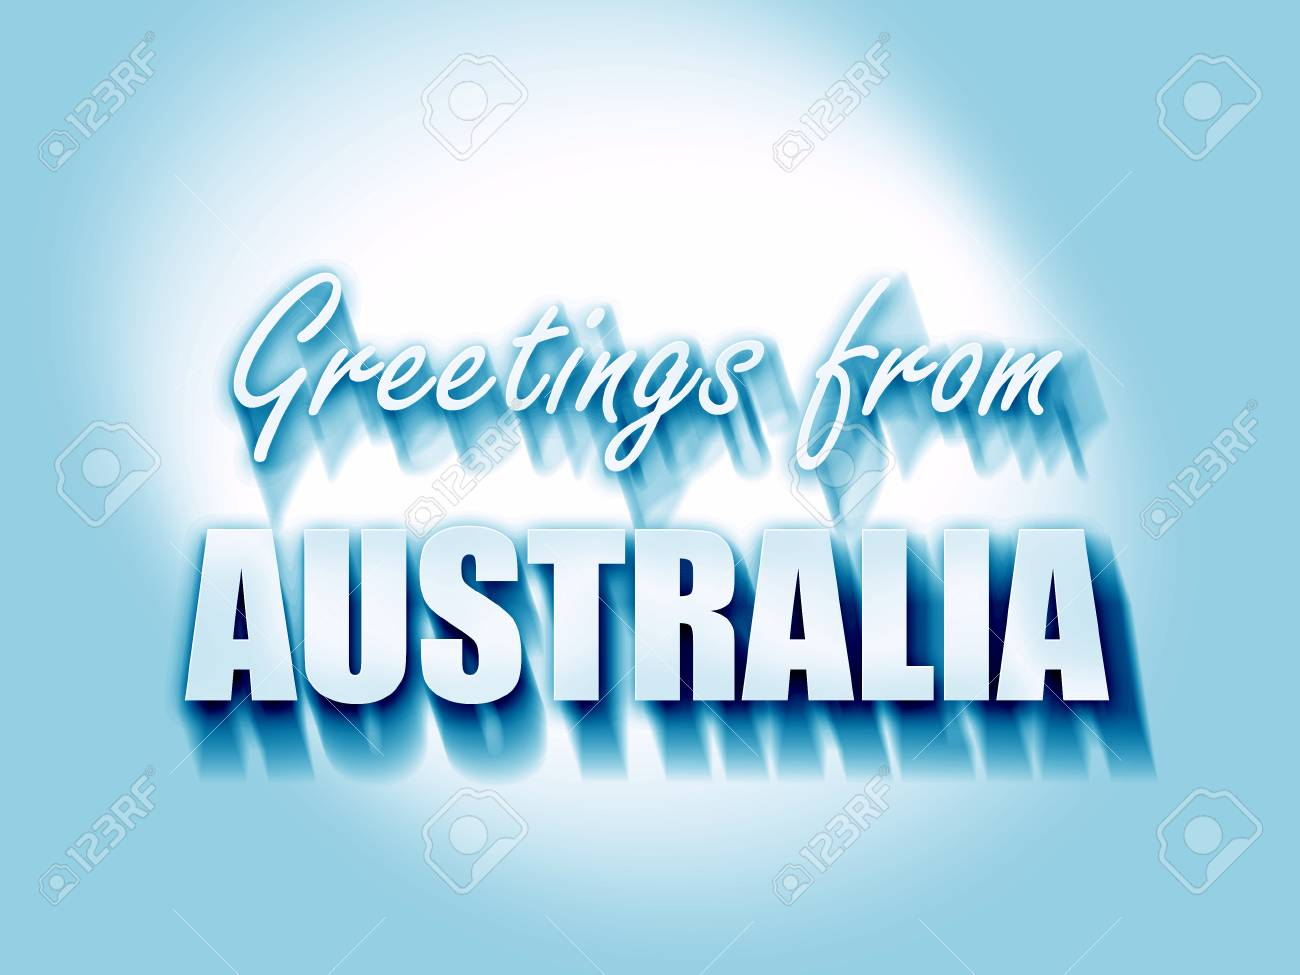 Greetings From Australia Card With Some Soft Highlights Stock Photo